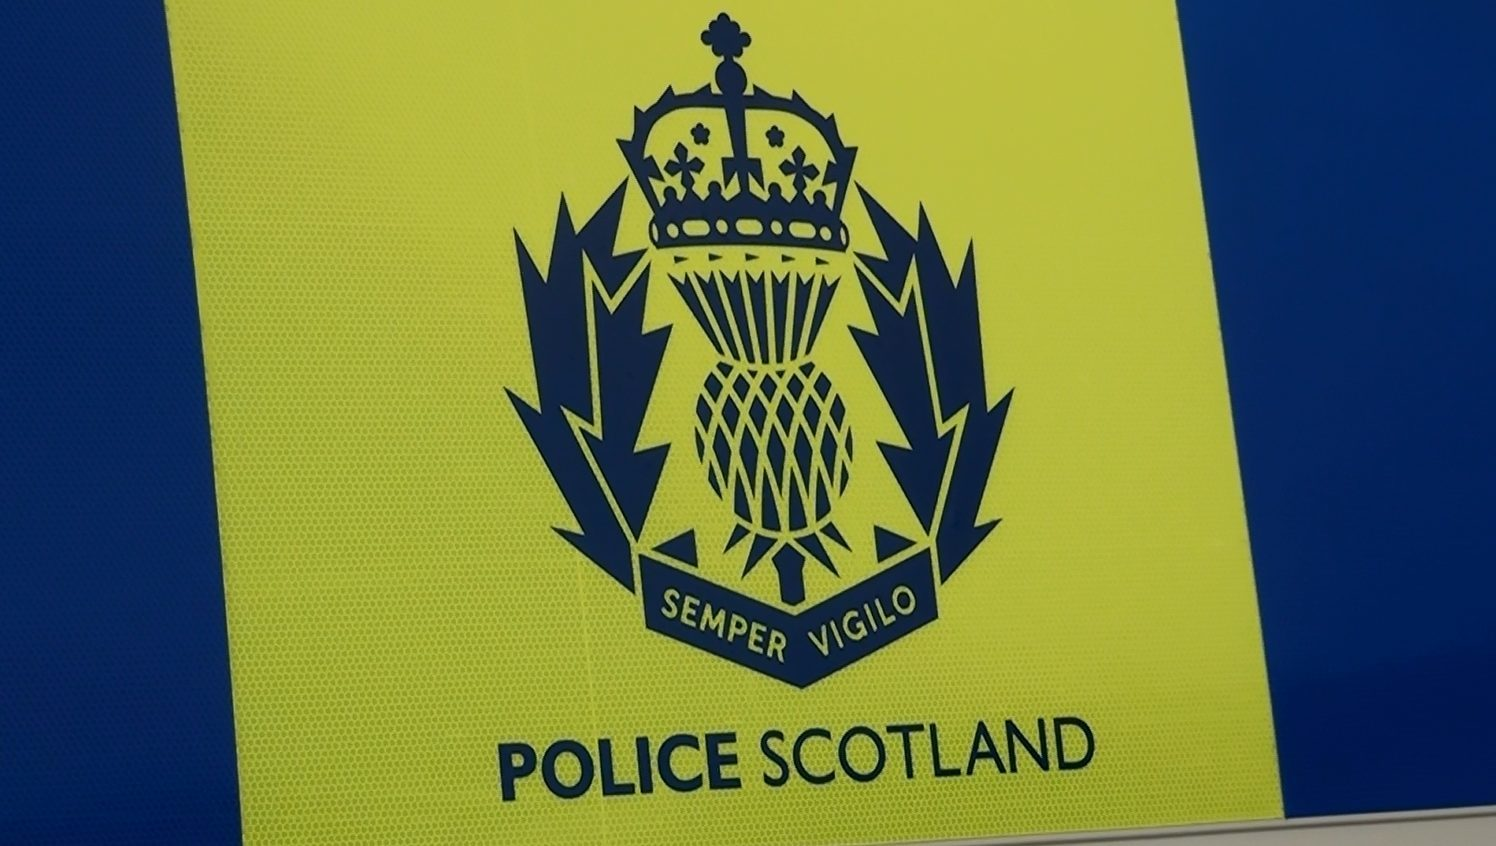 Police discovered £10,000 worth of amphetamine after raiding a home in Rosyth.